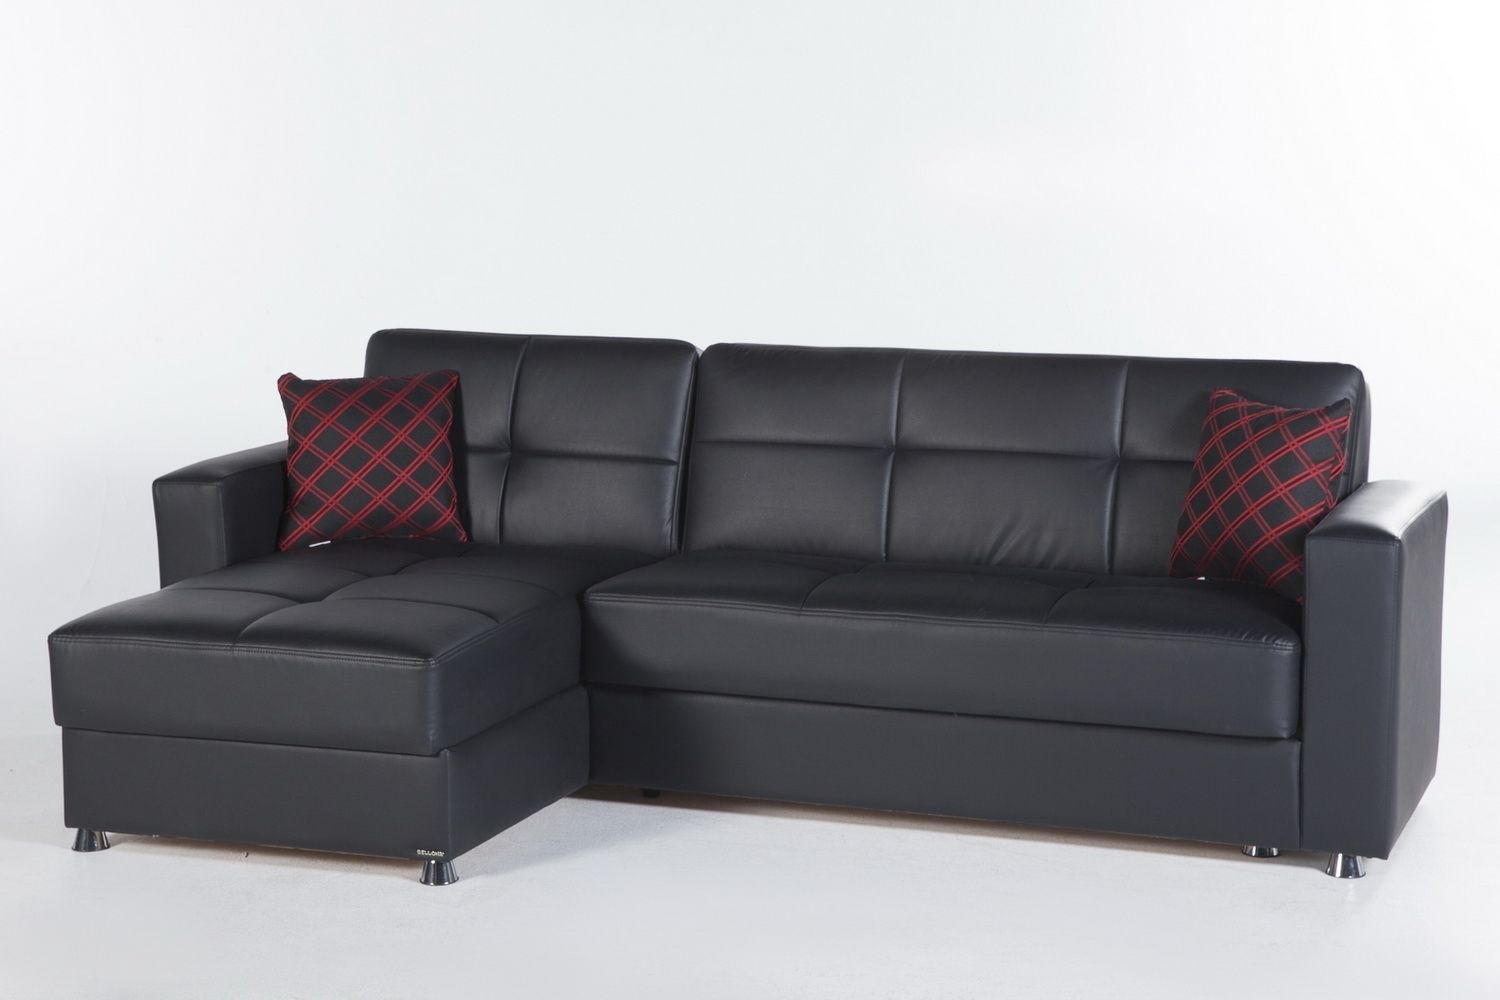 Elegant Sectional Sofa In Santa Glory Blackistikbal | Sectional Within Mcculla Sofa Sectionals With Reversible Chaise (View 12 of 25)